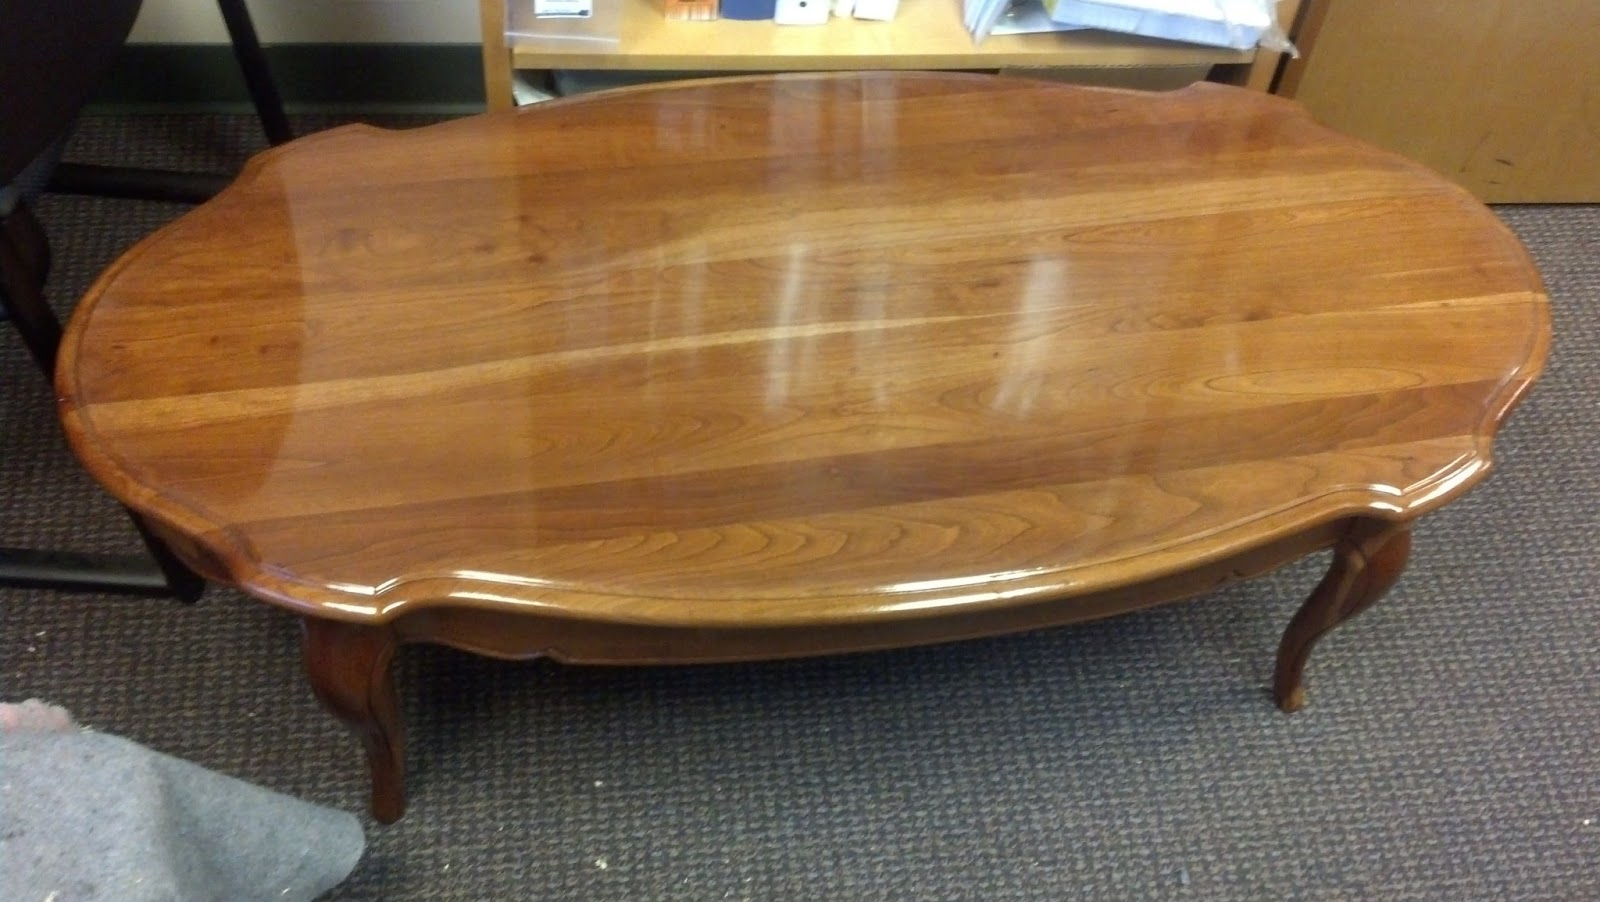 Furniture Repair: Refinish Coffee Table And End Tables  Project Log. Full resolution  portraiture, nominally Width 1600 Height 902 pixels, portraiture with #7C4B26.